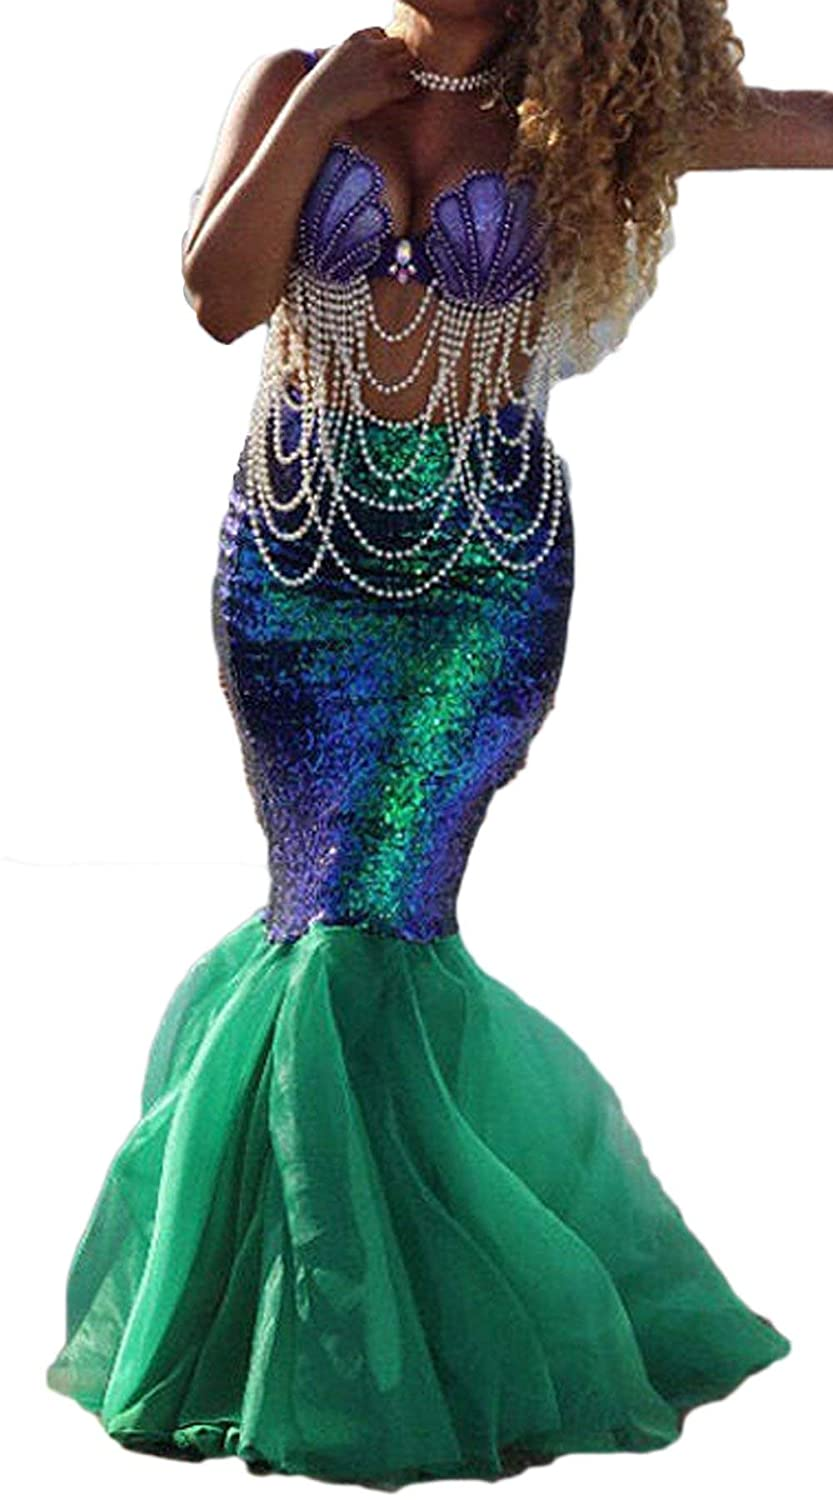 Women's Green Sequins Asymmetric Mesh Panel Mermaid Costume Skirt - DeluxeAdultCostumes.com